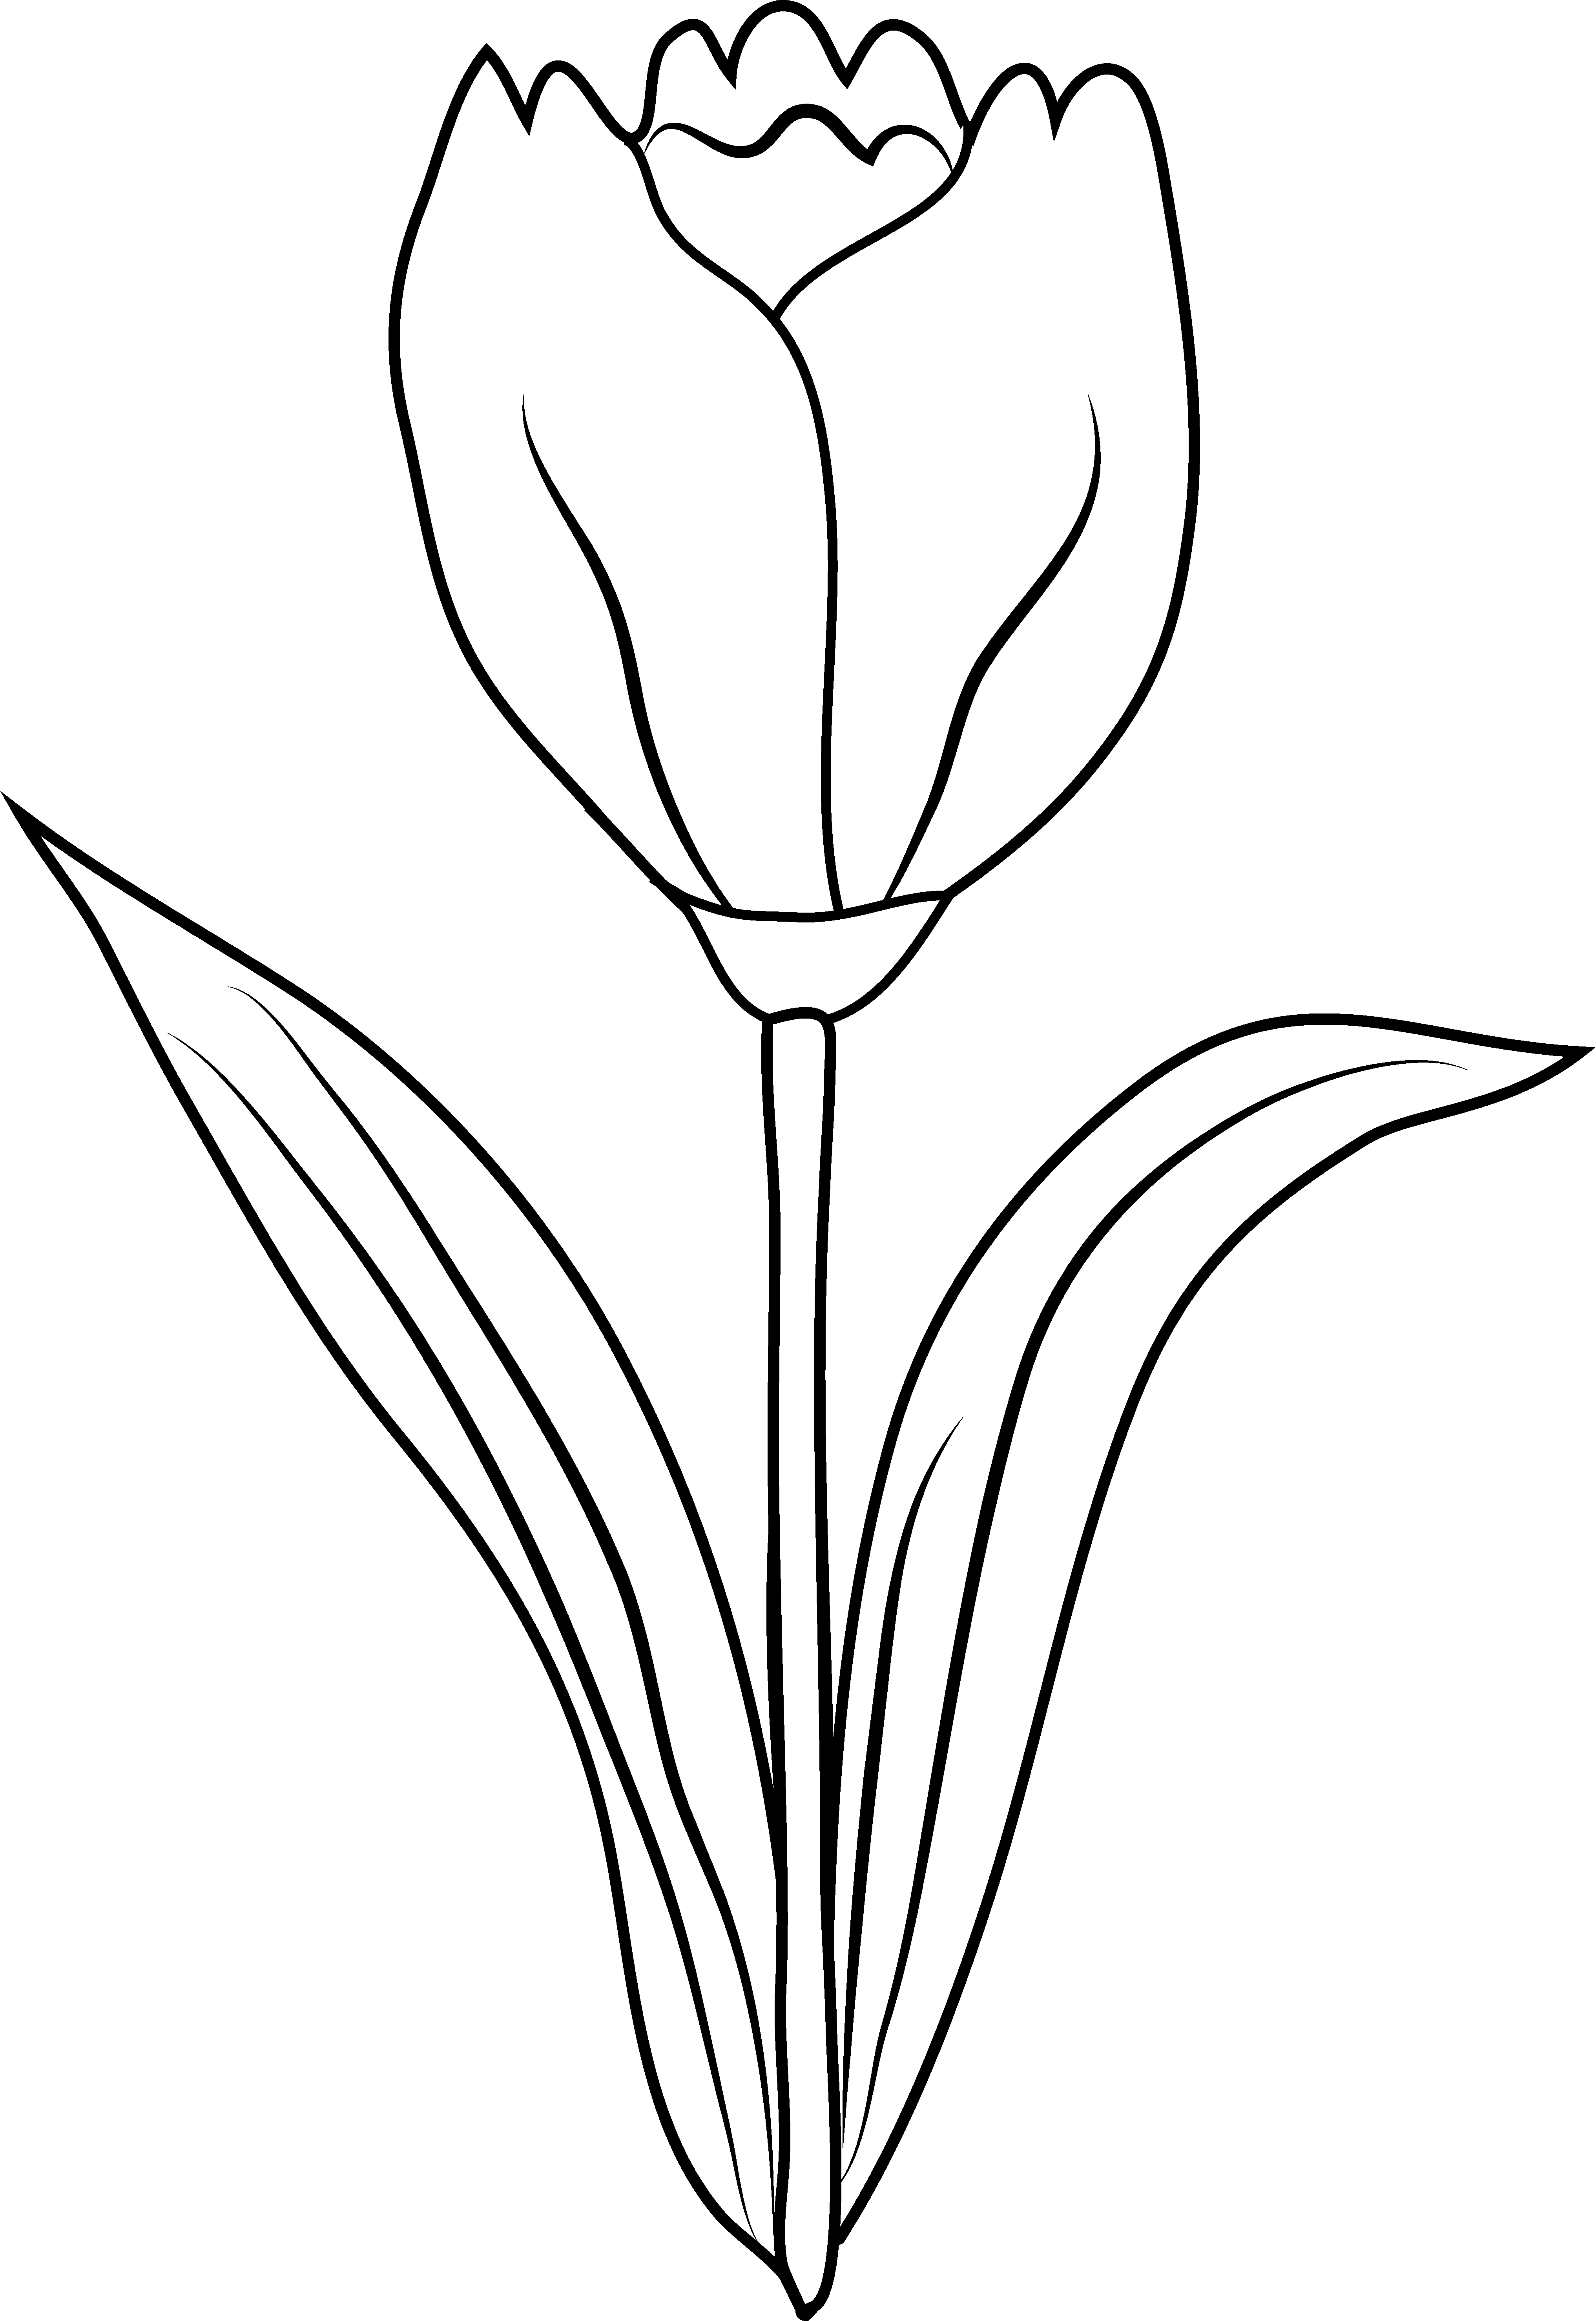 coloring flower png coloring flower png coloring flower png